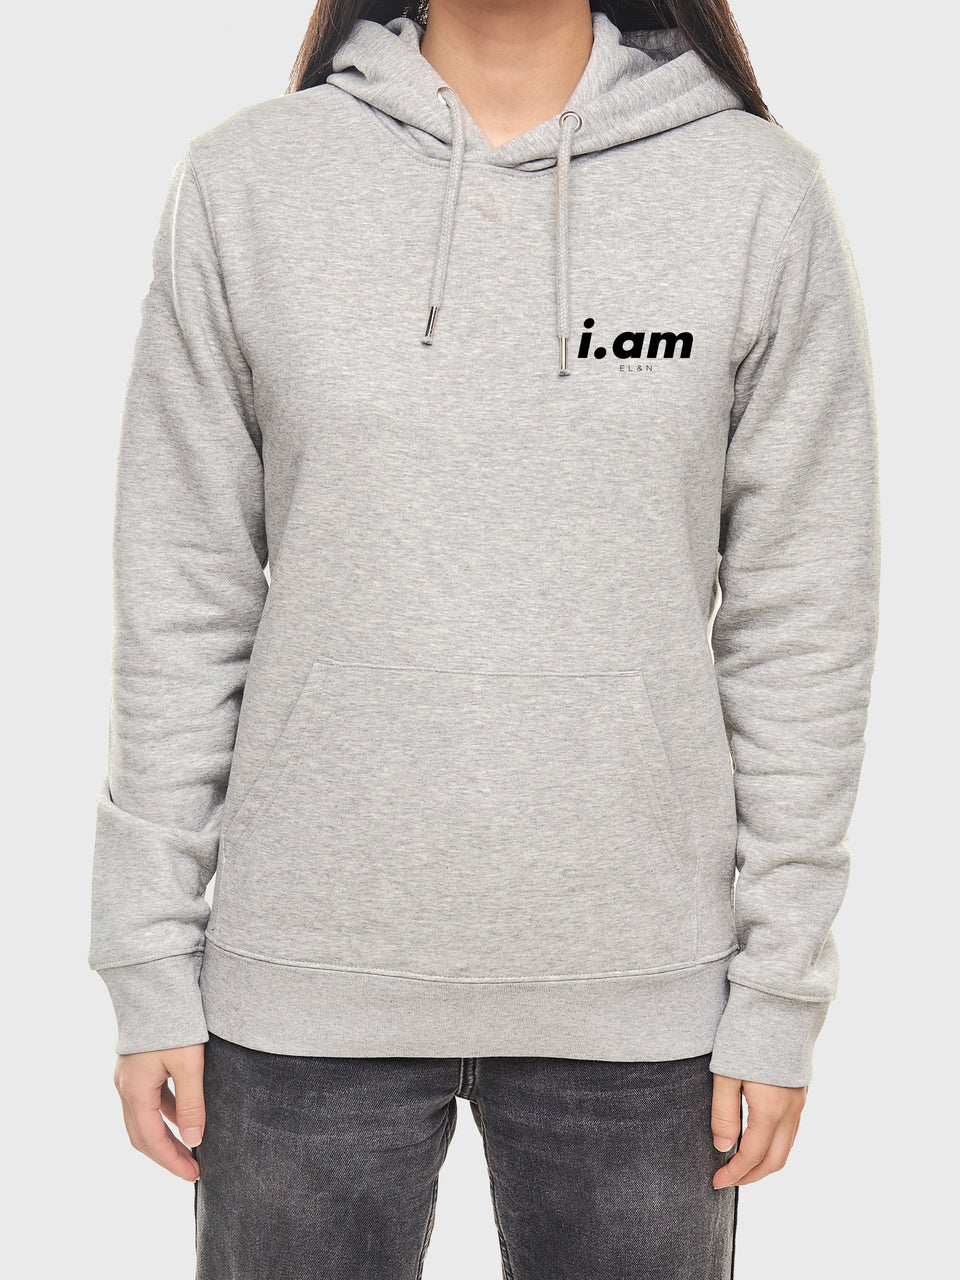 I am who I am - Grey - Unisex pull over hoodie